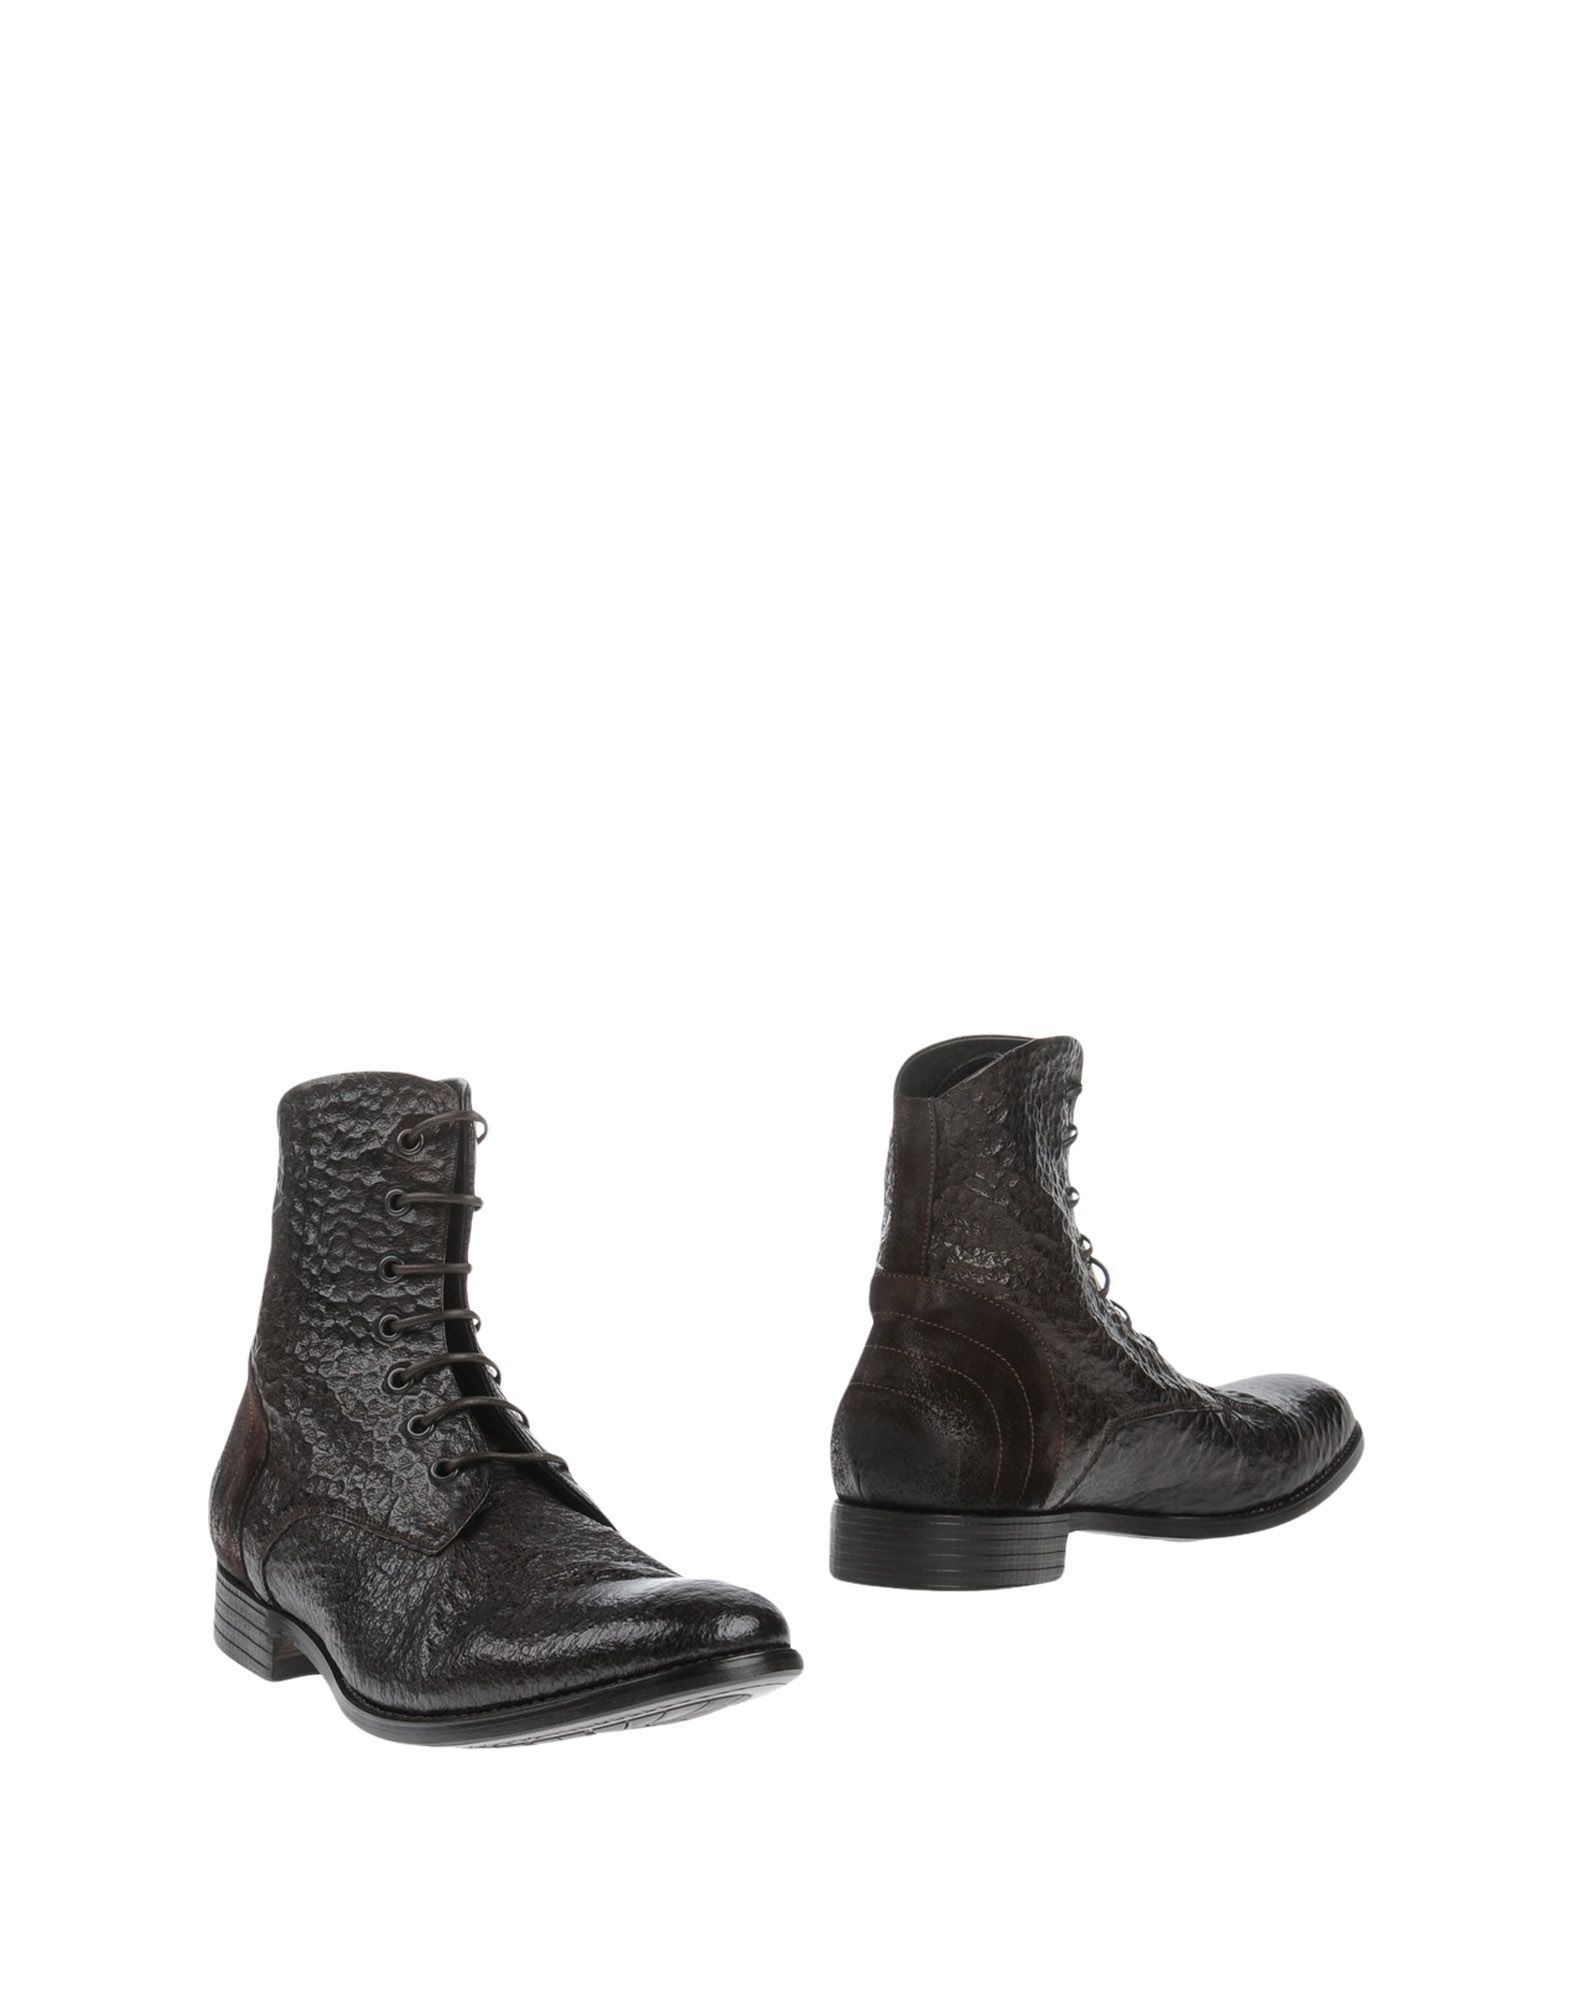 b2438fecf2be Alexander Hotto Boots - Men Alexander Hotto Boots online on YOOX United  States - 11269110LL